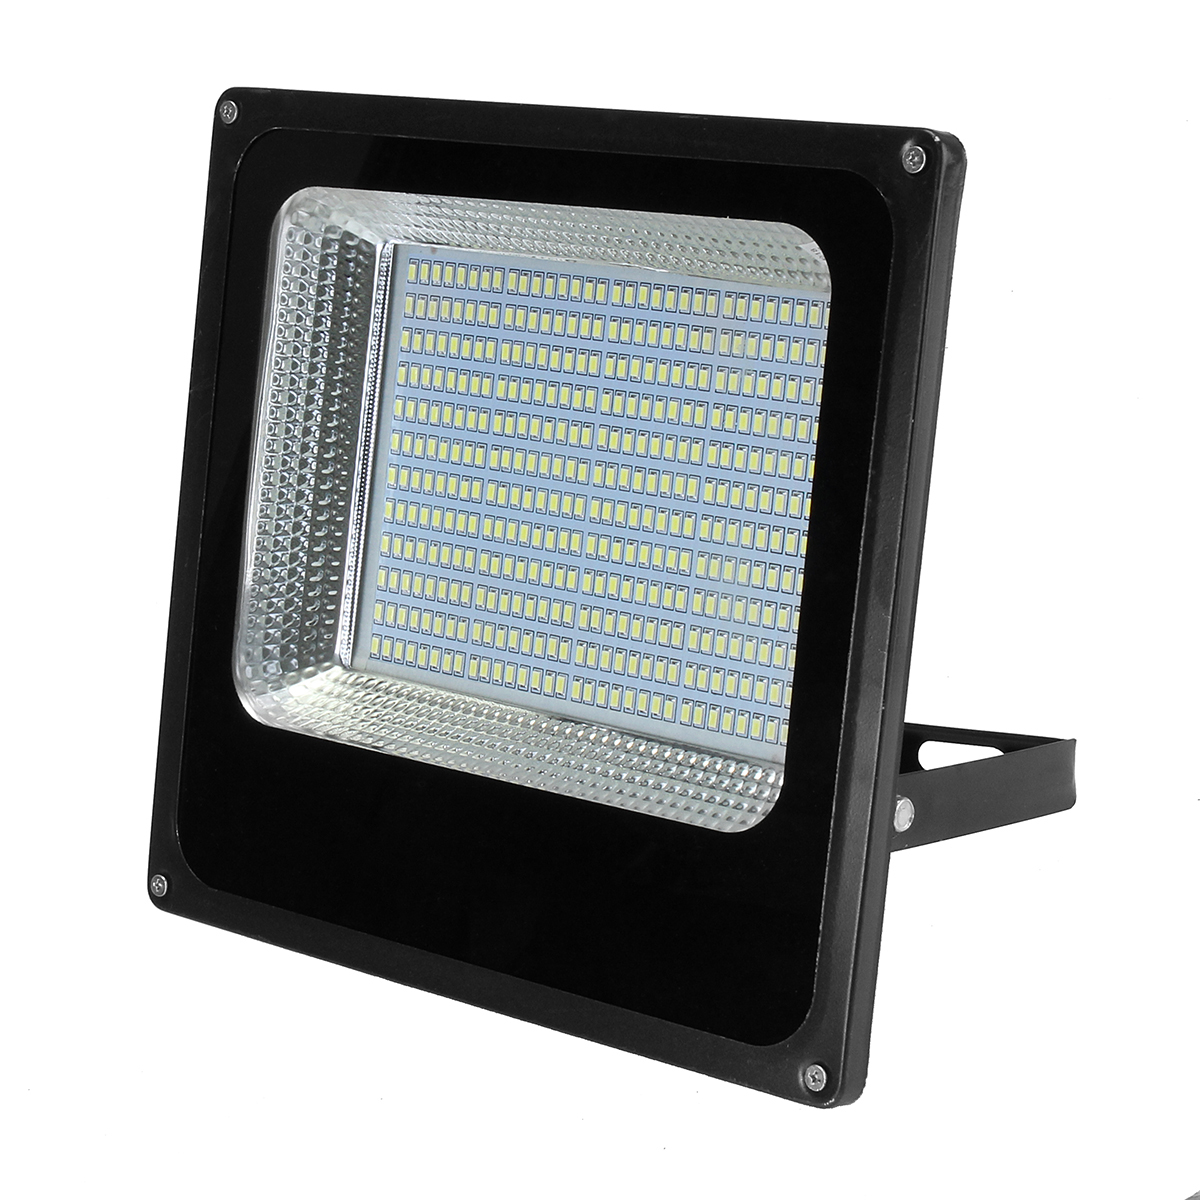 Smuxi 60W LED Spotlight Outdoor Lighting 2835SMD 384LED Wall Washer Lamp Super Bright Security Lights Waterproof Led Flood Light dc12v 6w led underwater lights led flood light waterproof lamp spotlight lighting